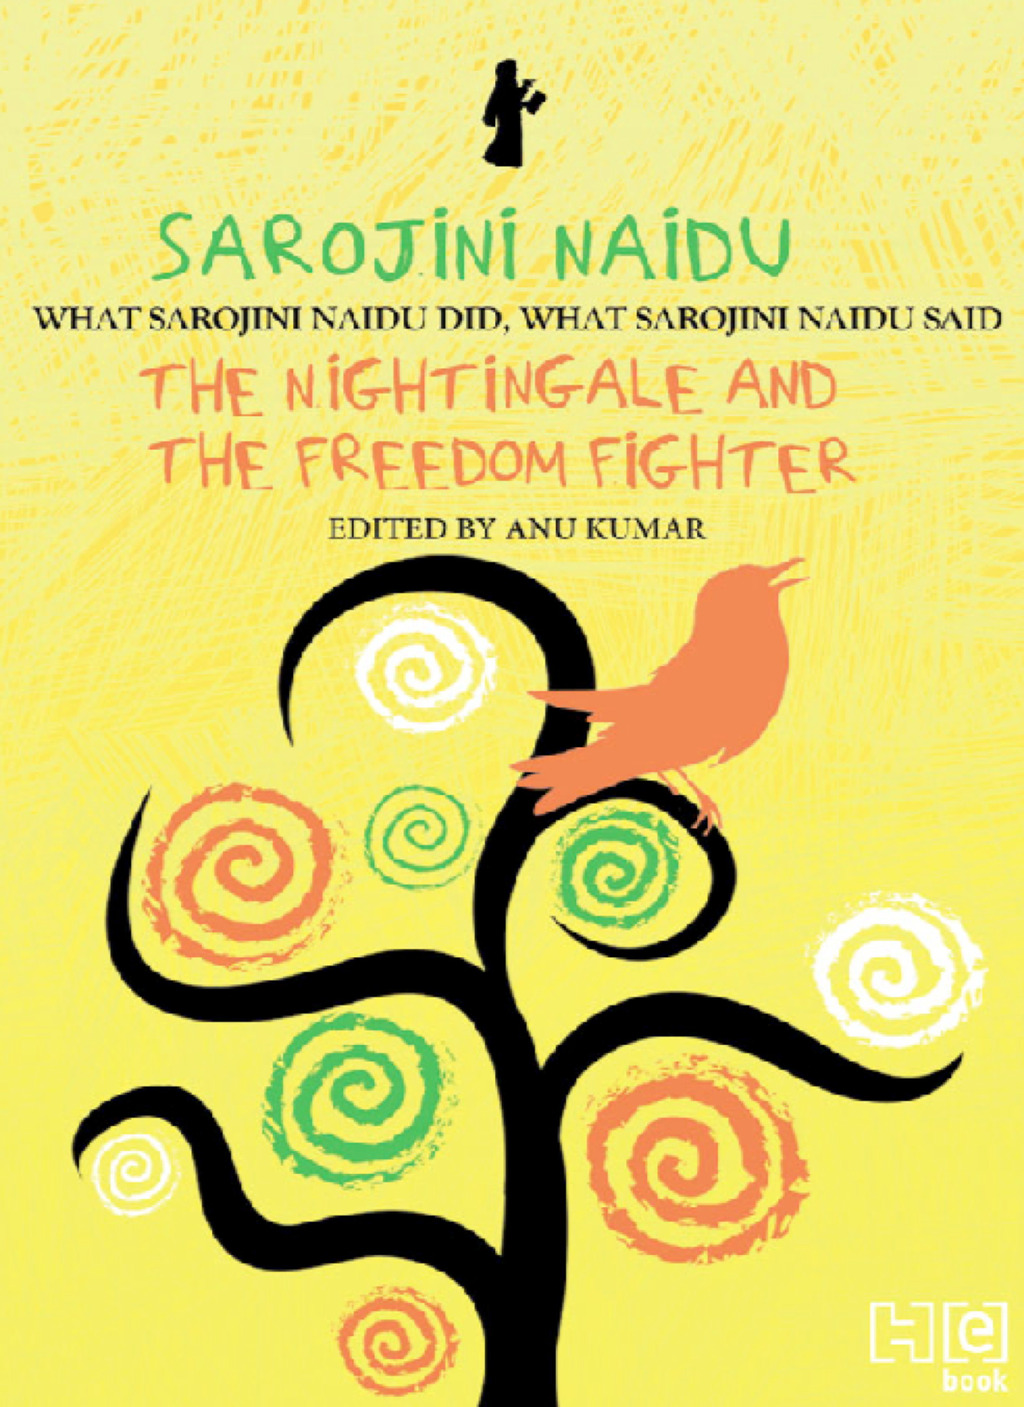 Sarojini Naidu THE NIGHTINGALE AND THE FREEDOM FIGHTER: WHAT SAROJINI NAIDU DID,  WHAT SAROJINI NAIDU SAID